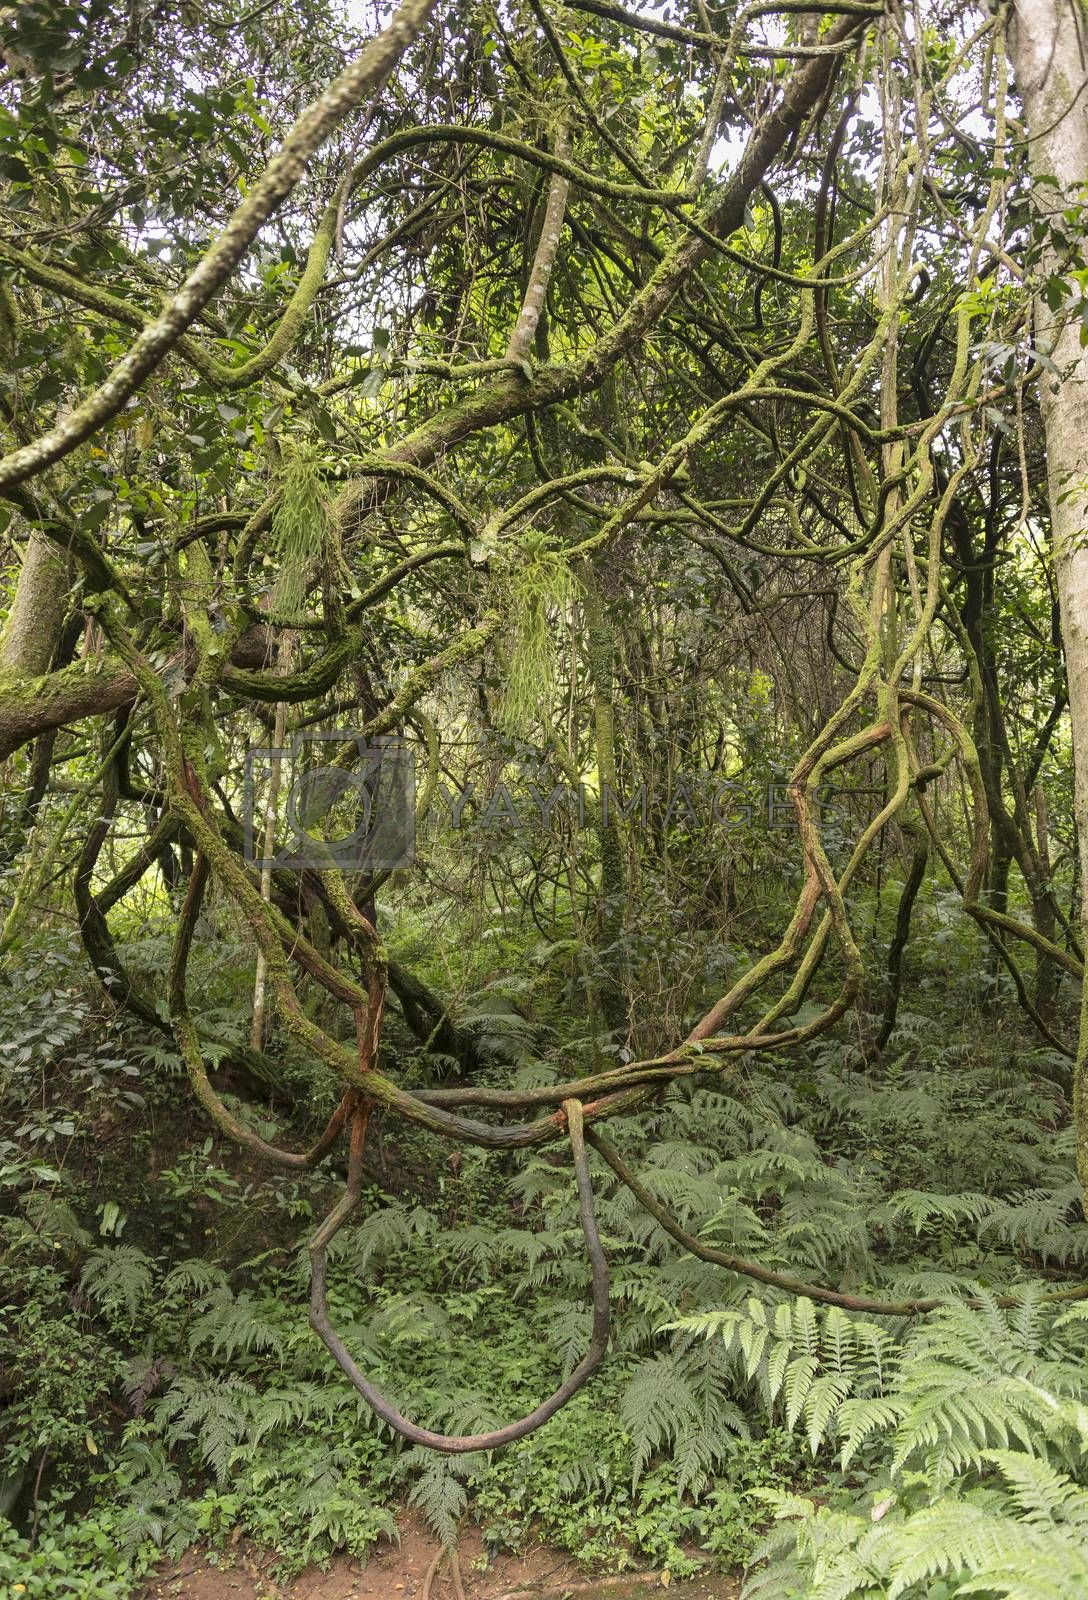 winding vine branch in tropical forest    by compuinfoto